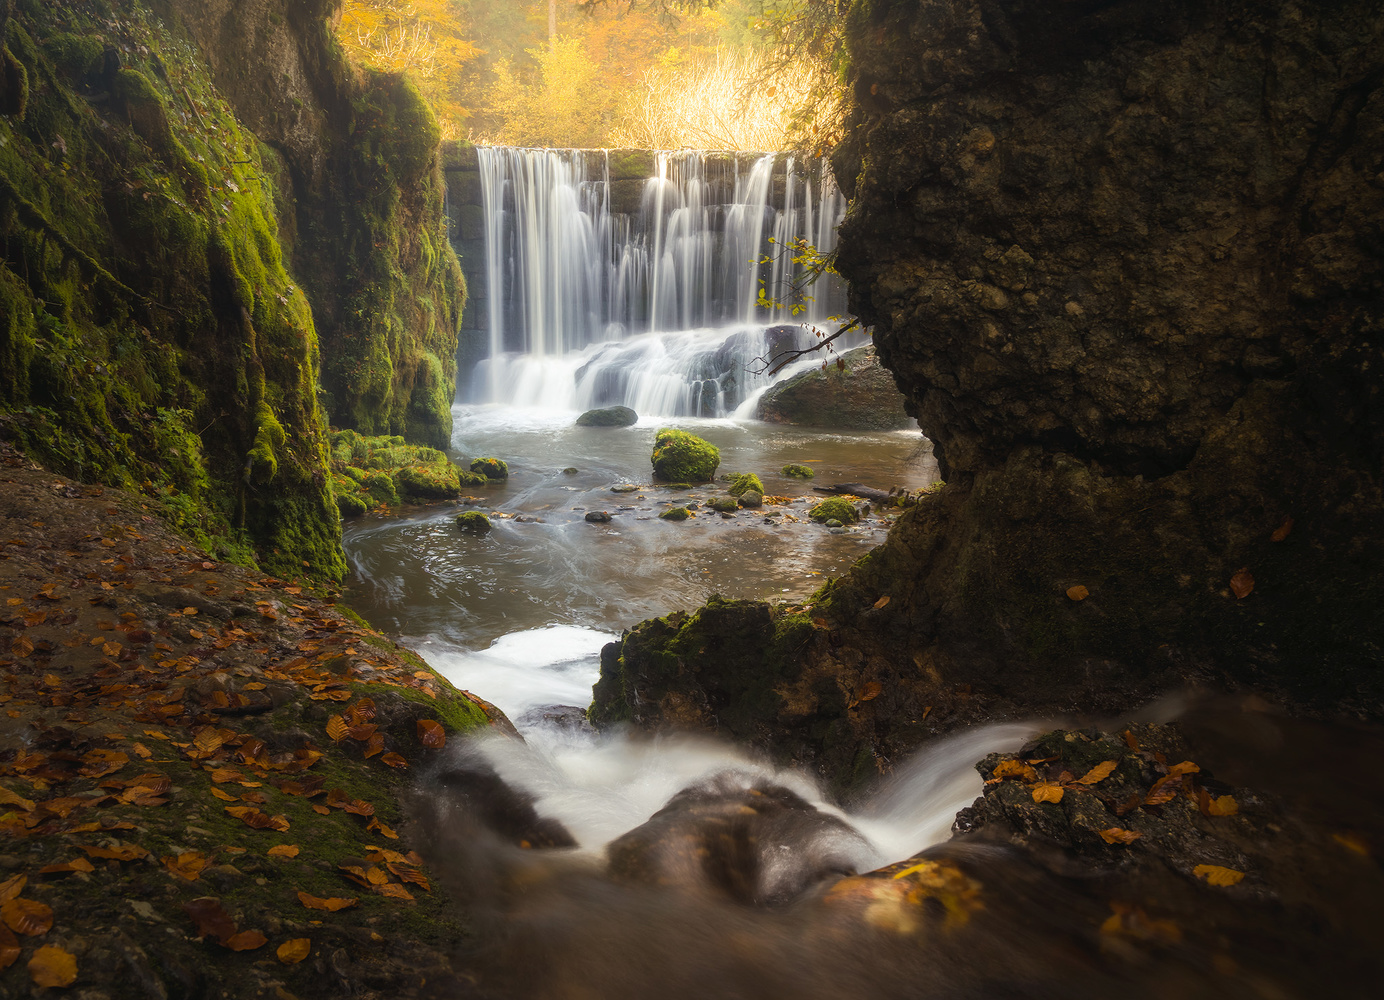 Golden Hour Waterfall by Christian Möhrle